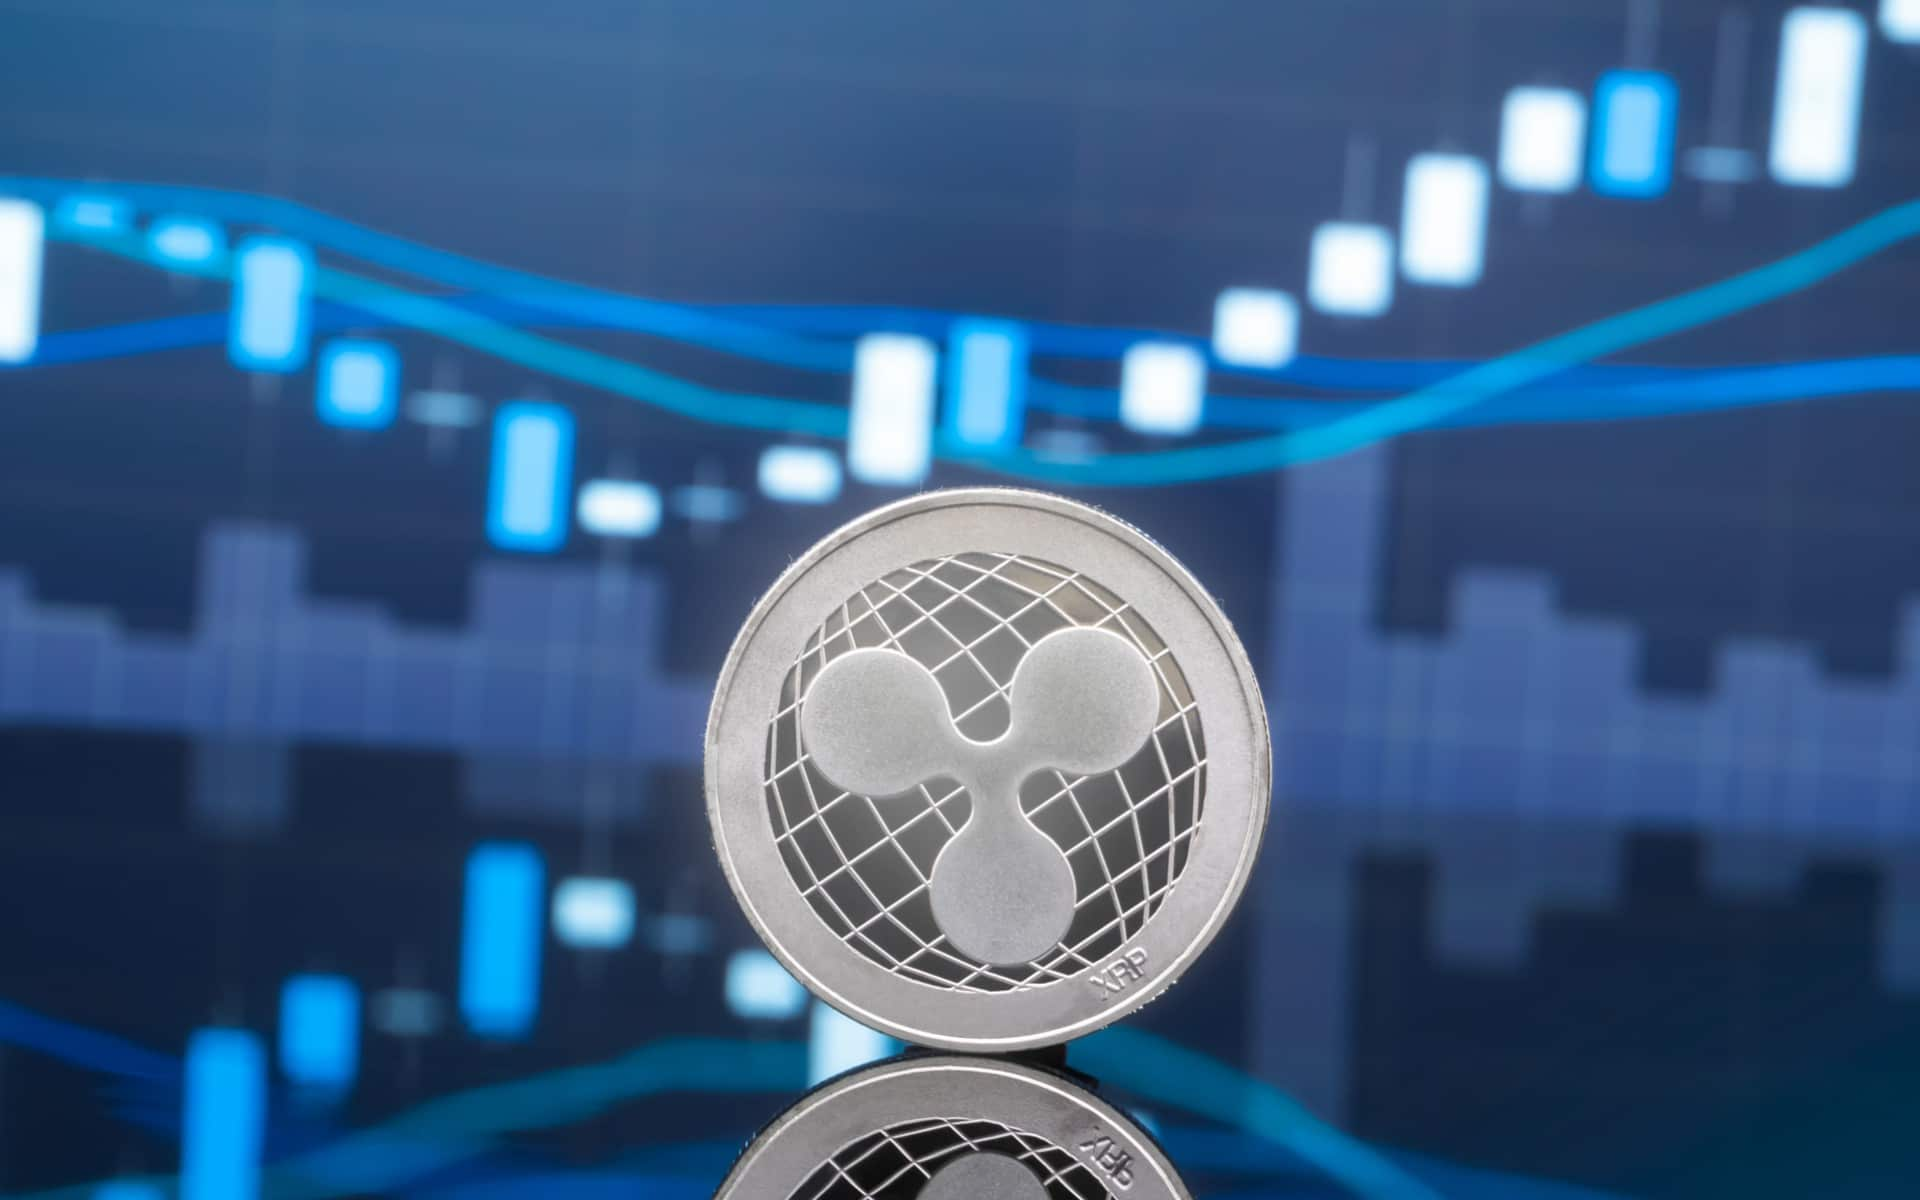 Trading Ripple: Come investire in XRP